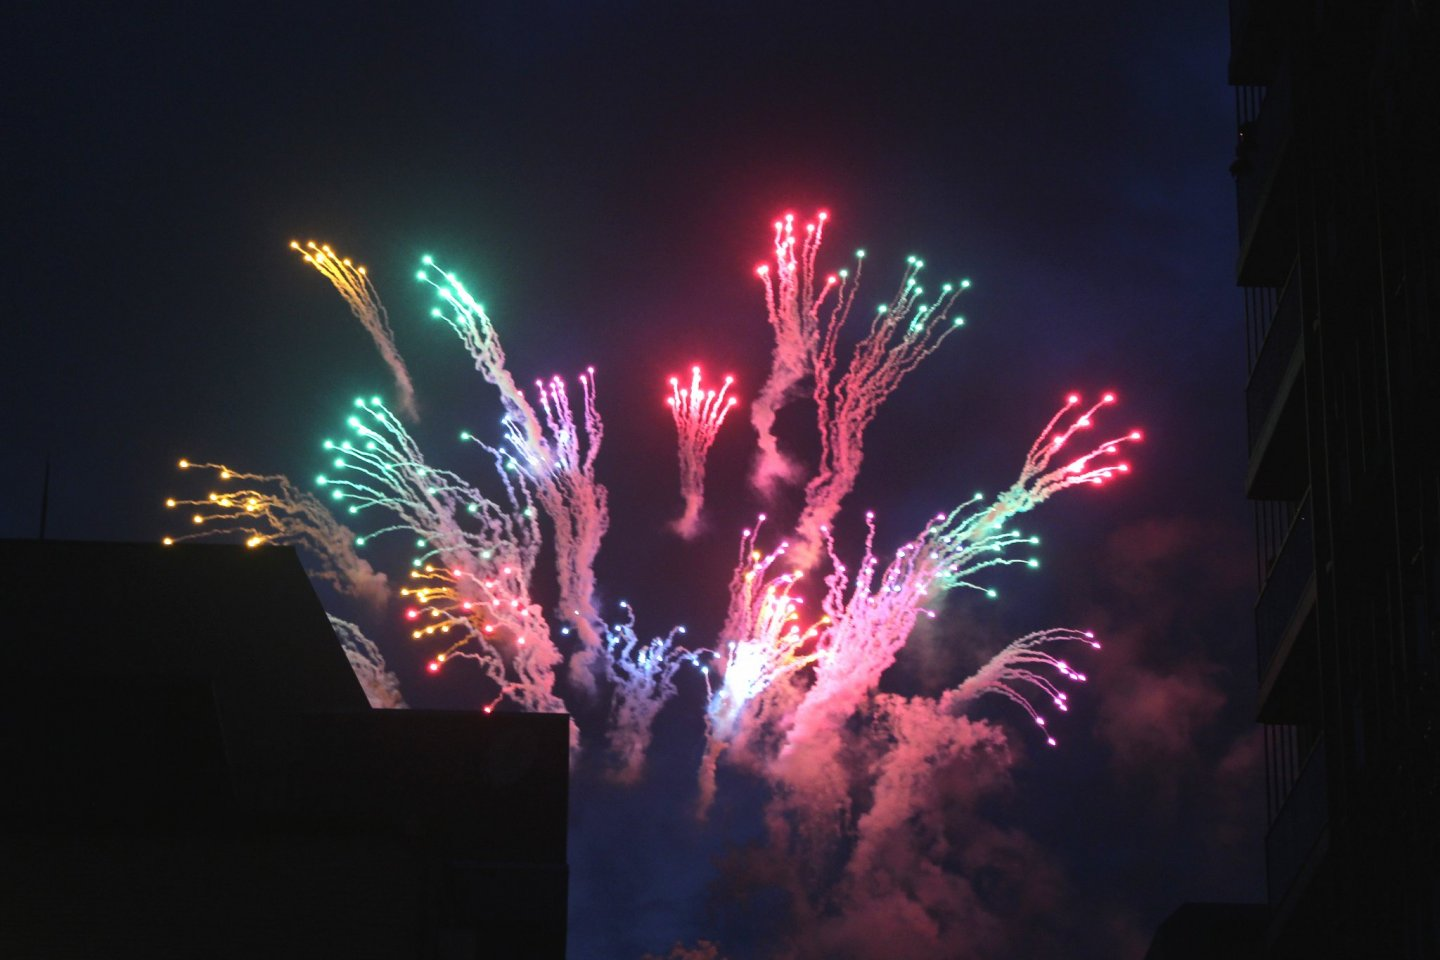 Summer fireworks are known as \'hanabi\'